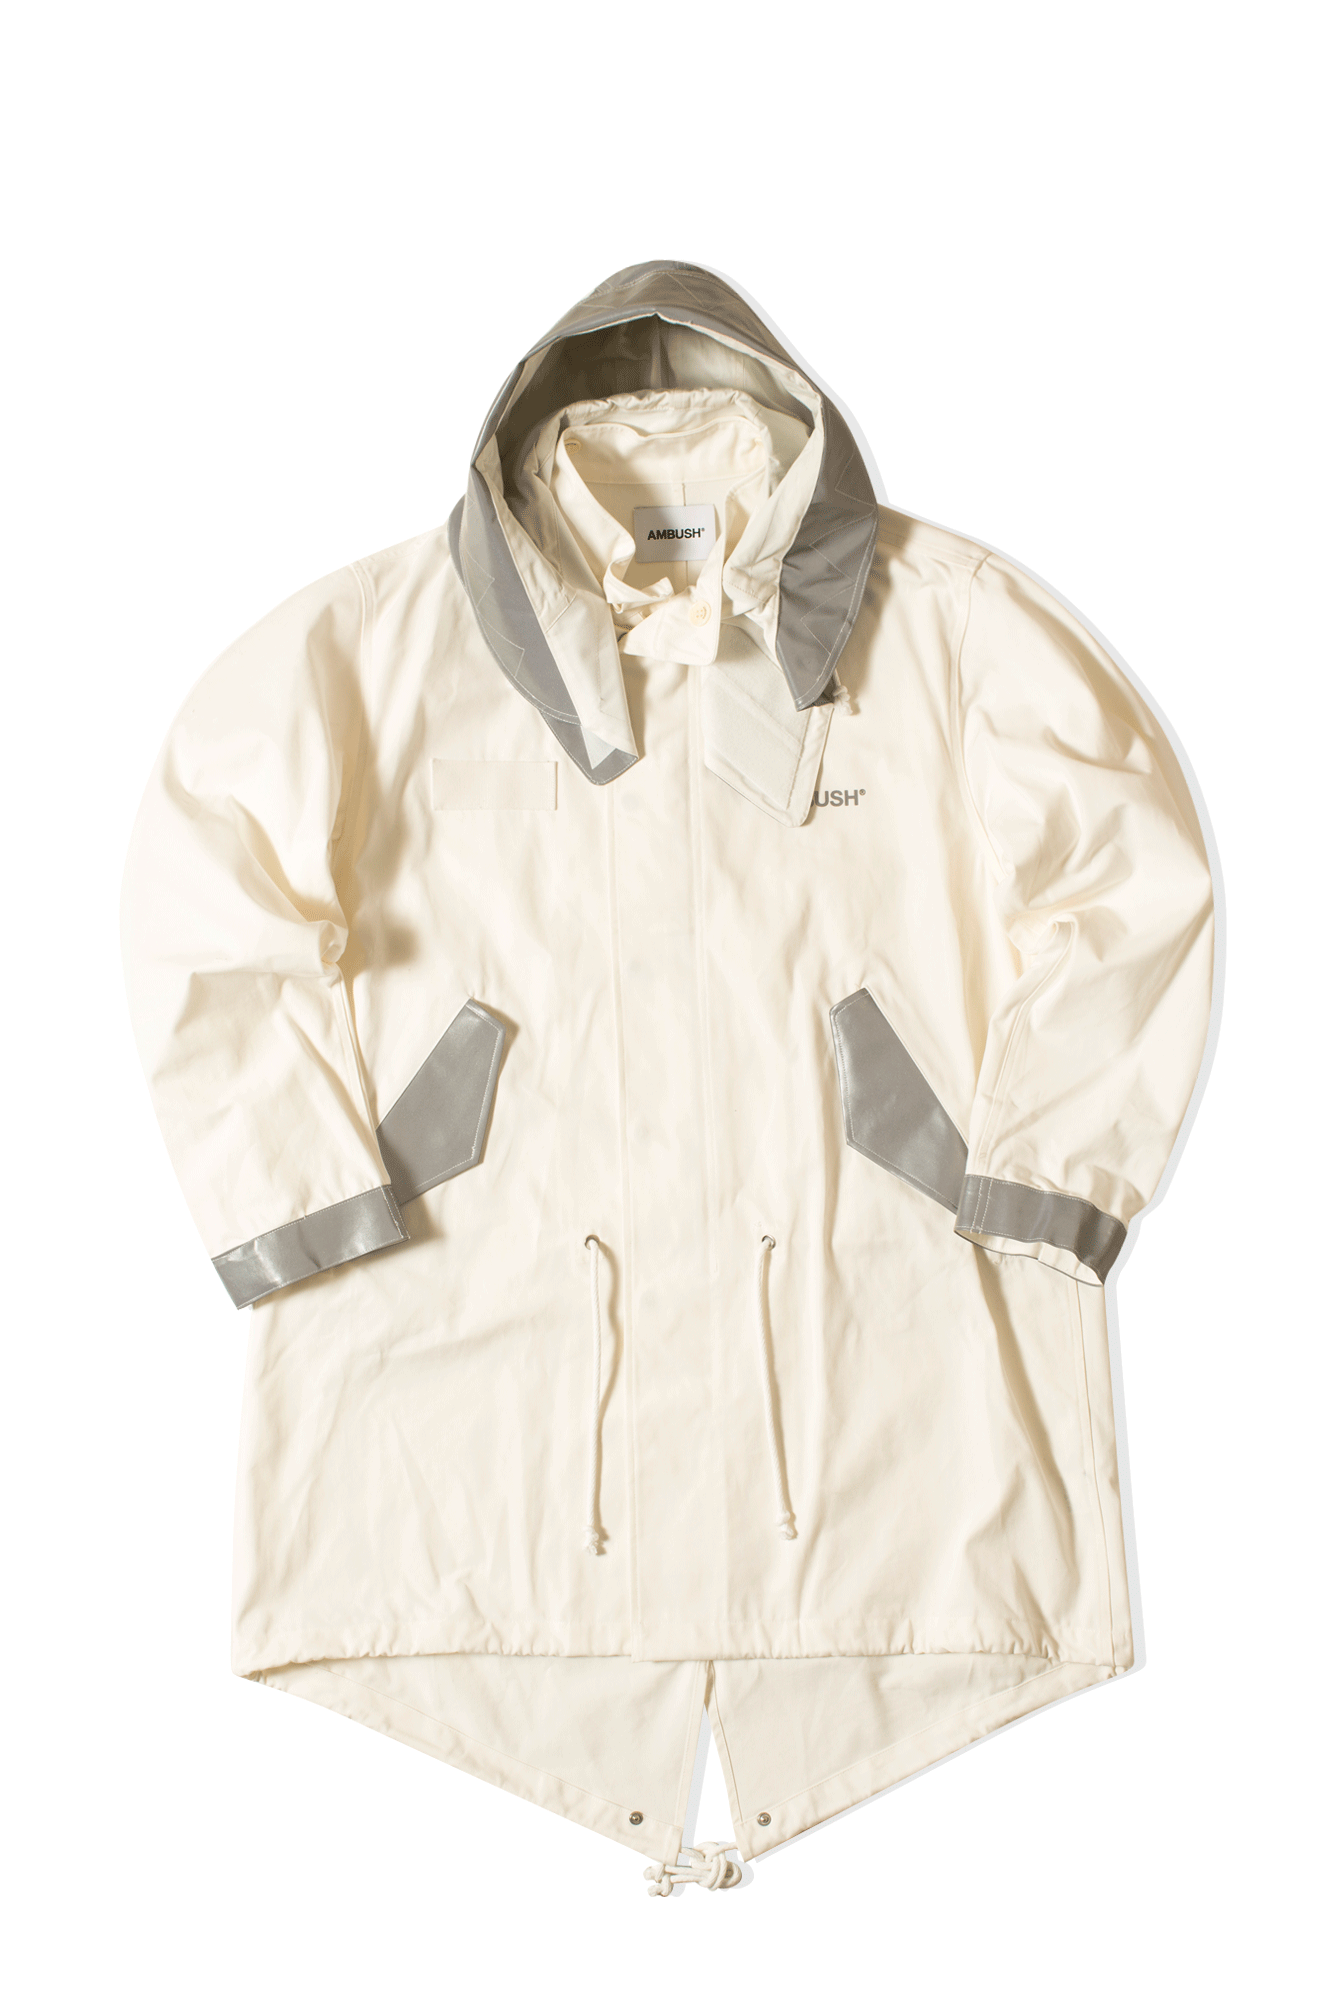 Ambush Trench coats Mod Coat White 12111792#000#WHT#1 - One Block Down